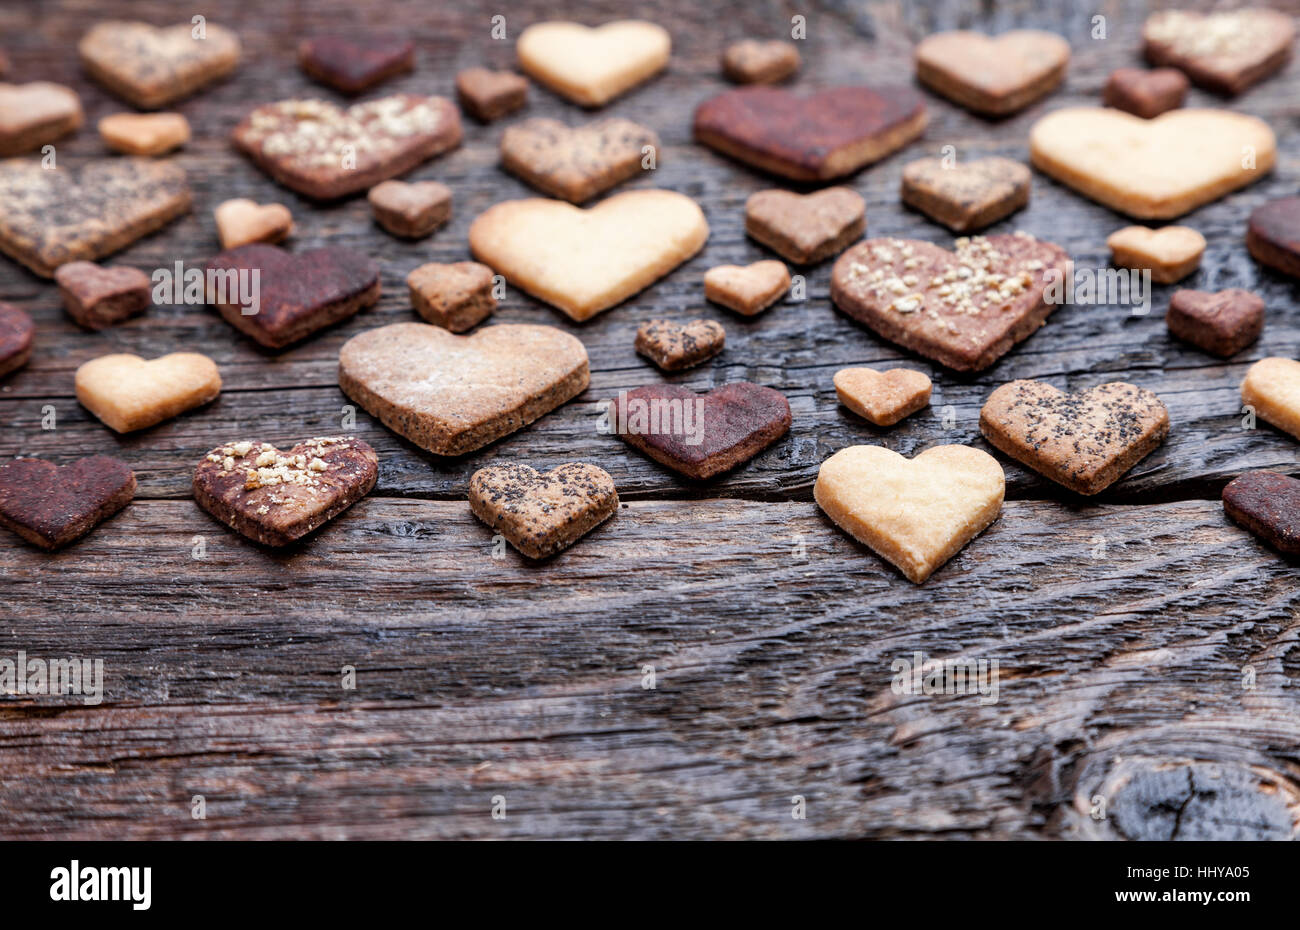 Delicious heart shaped cookies baked with love on wooden background - Stock Image